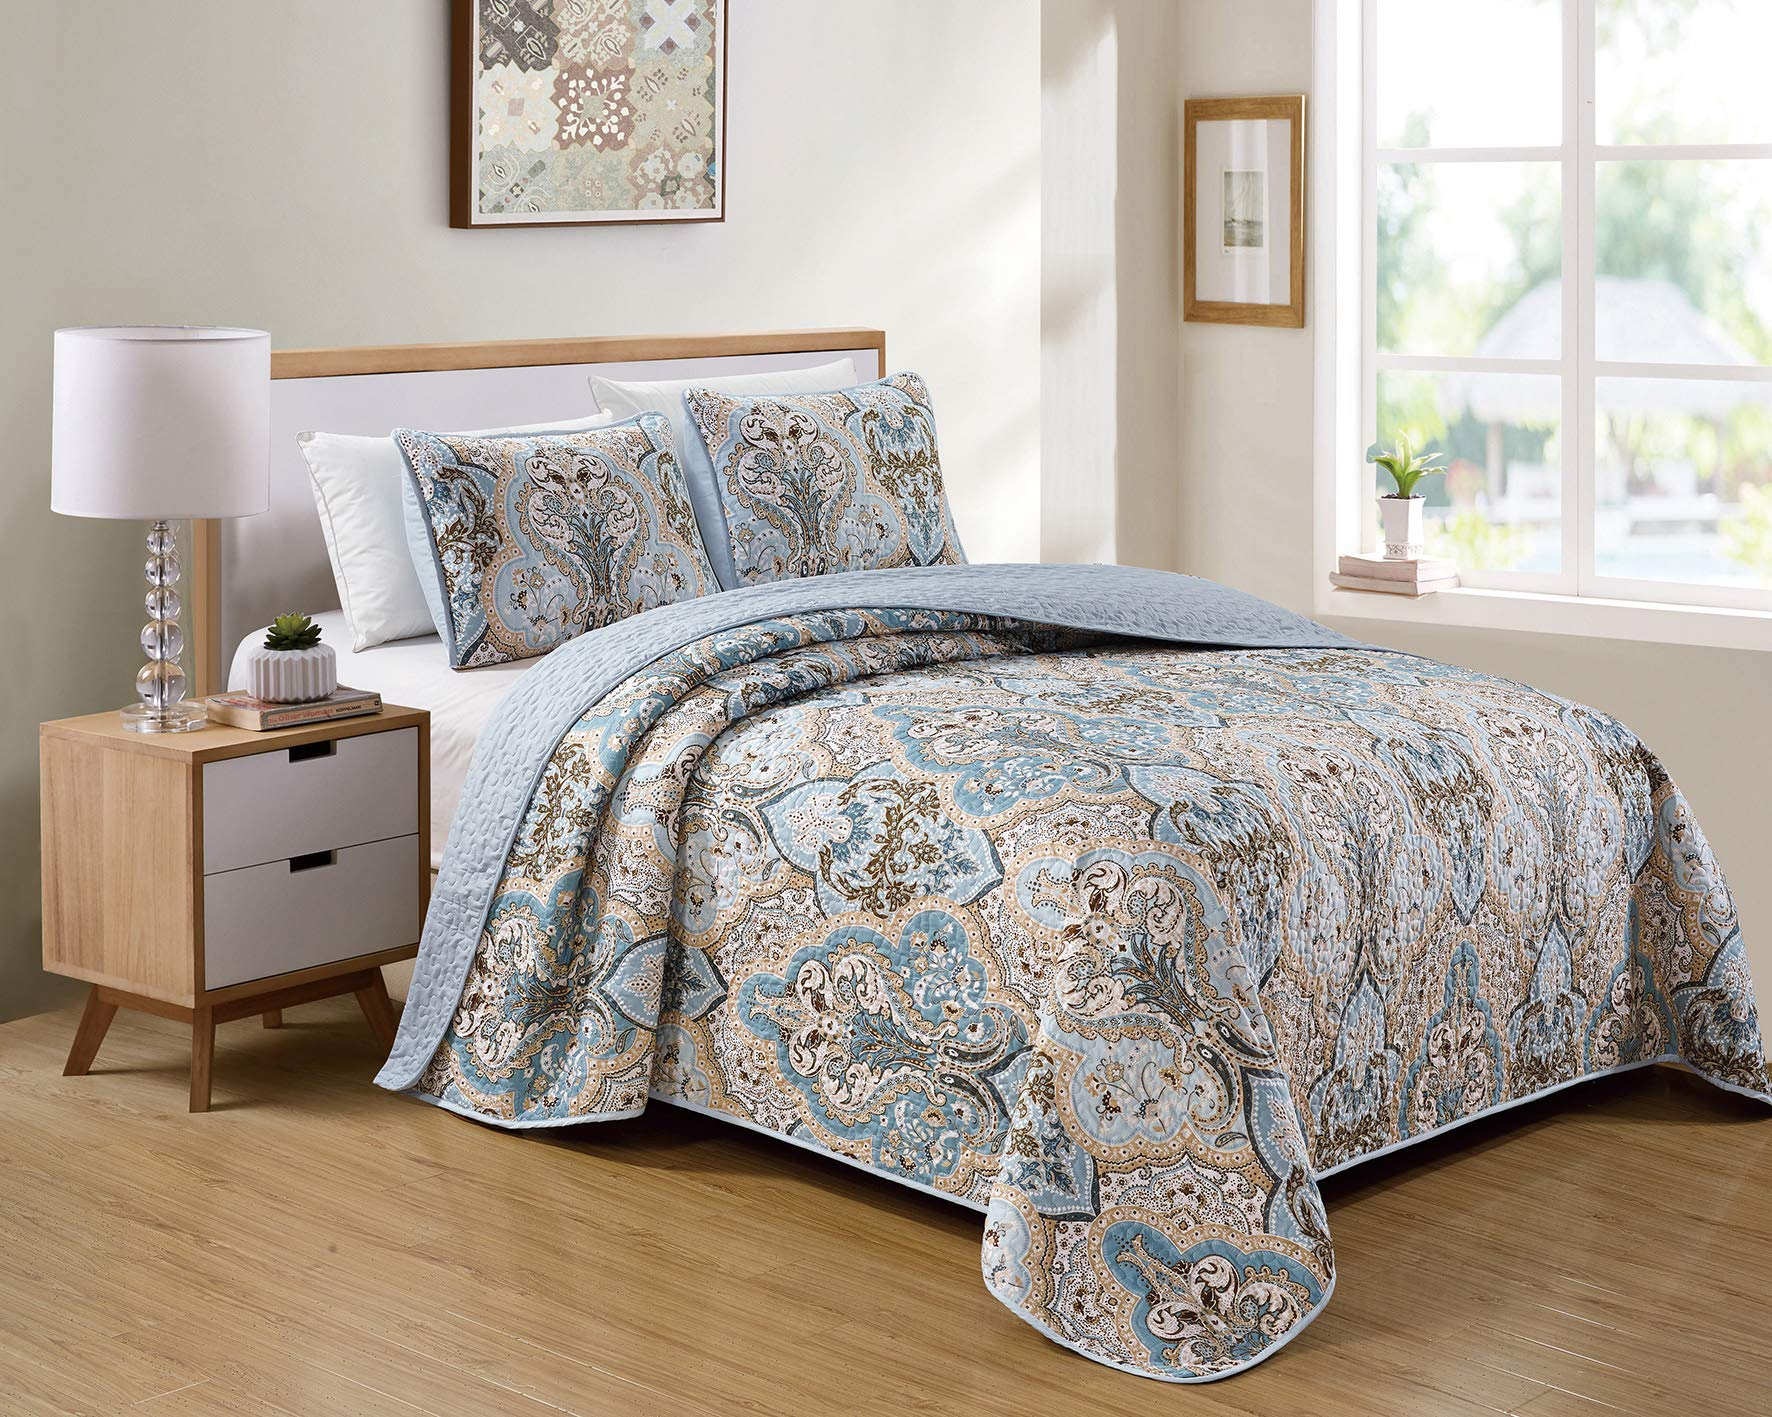 Kids Zone Home Linen 2 Piece Twin/Twin Extra Long Bedspread Set Damask Pattern Light Blue White Beige and Brown. by Kids Zone Home Linen